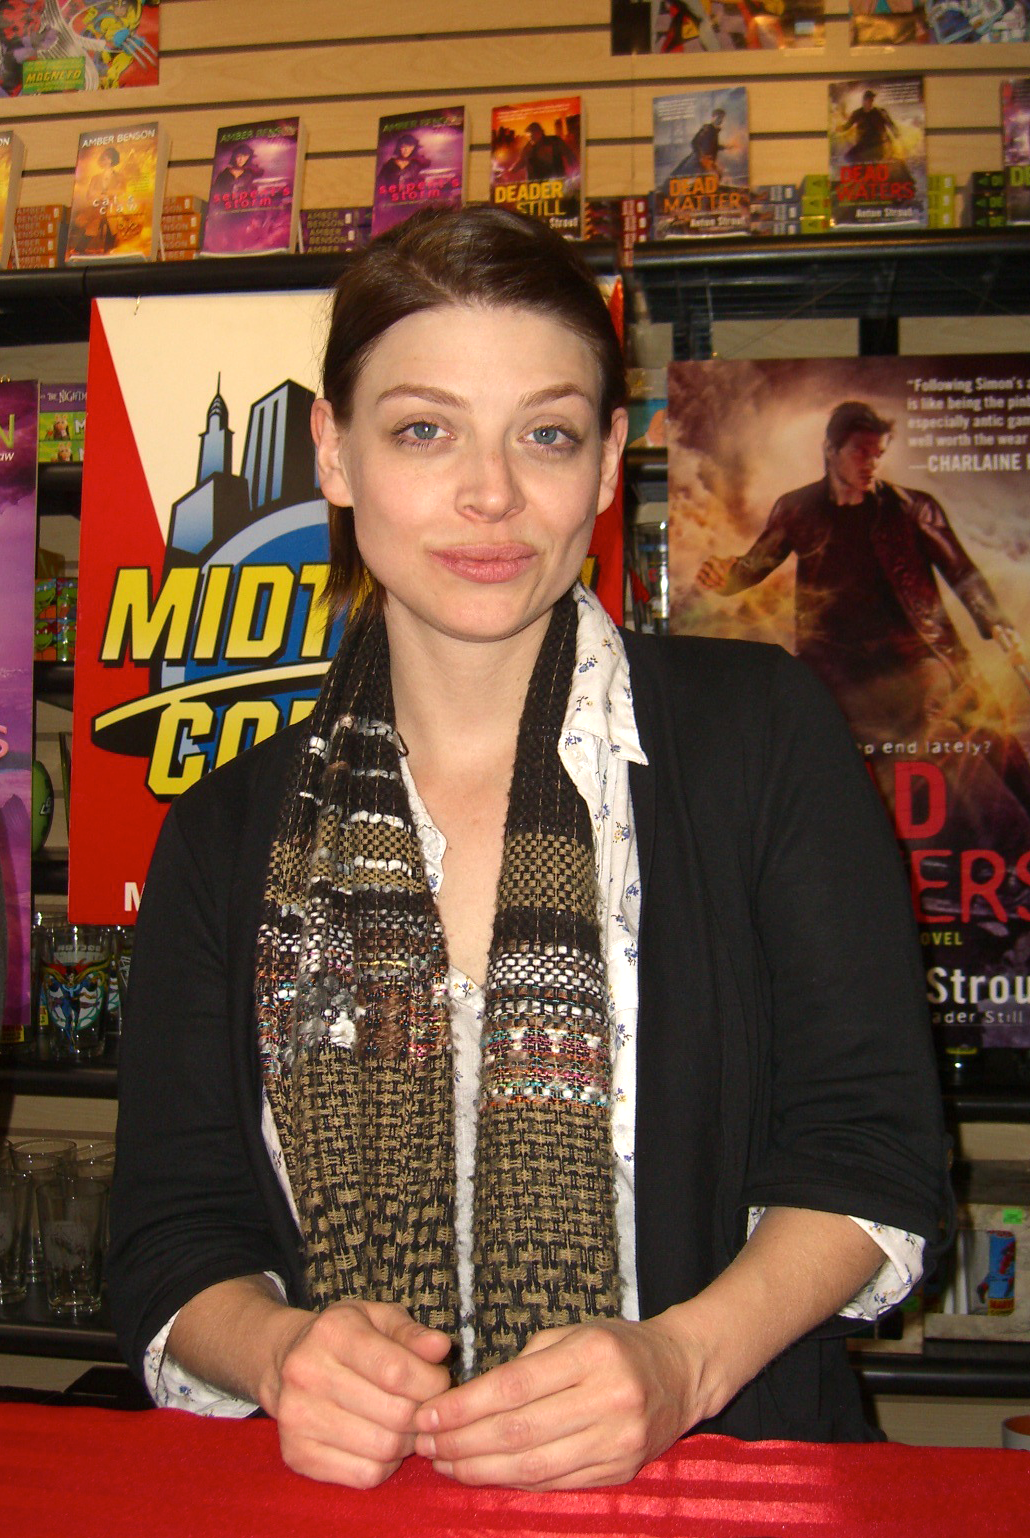 The 41-year old daughter of father Edward Benson and mother Diane Benson Amber Benson in 2018 photo. Amber Benson earned a  million dollar salary - leaving the net worth at 3 million in 2018